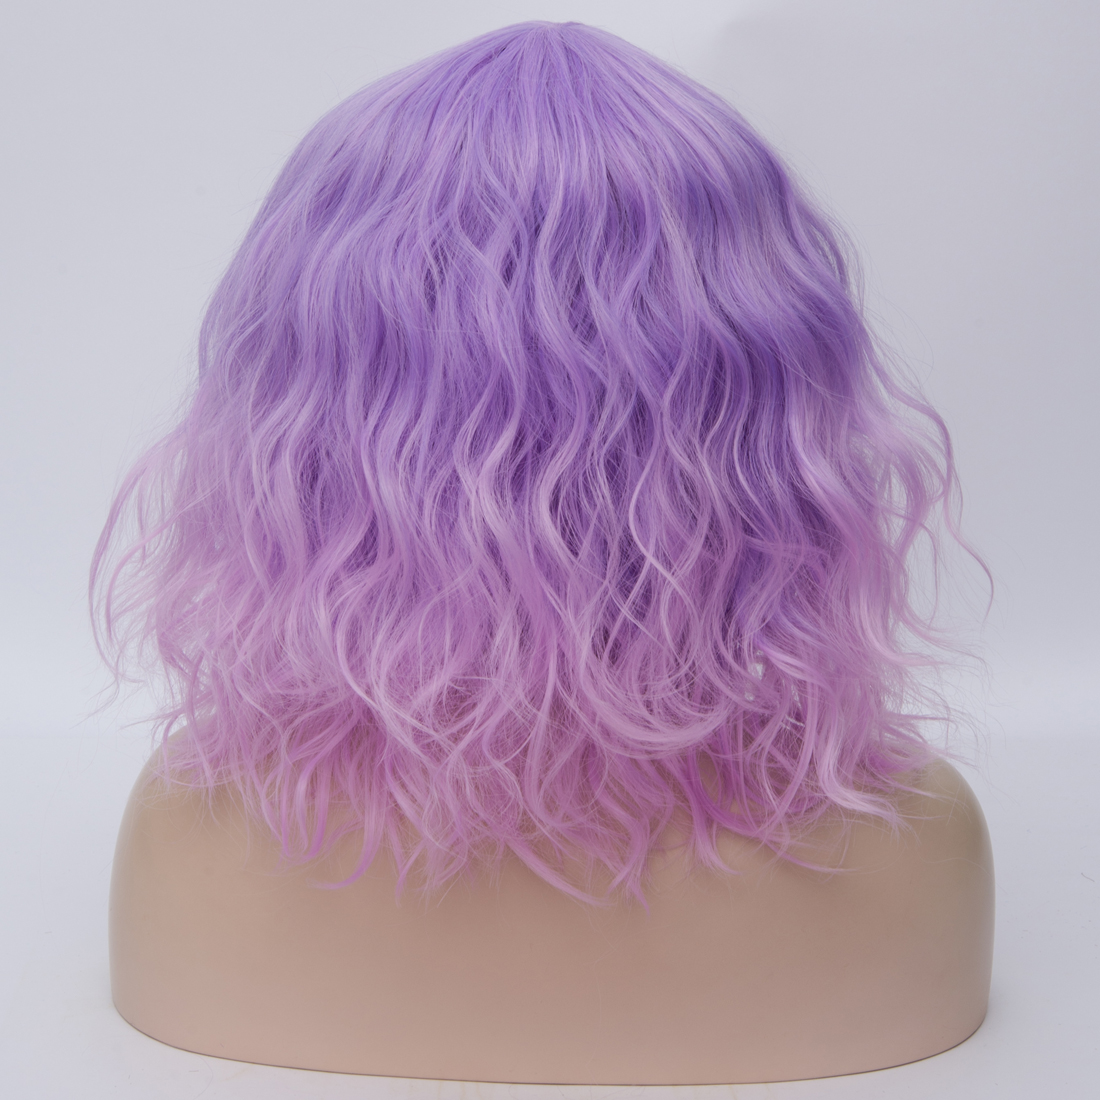 He42f227ff3c14481b526aa7ed4f4030aQ - Similler Short Synthetic Wig for Women Cosplay Curly Hair Heat Resistance Ombre Color Blue Purple Pink Green Orange Two Tones